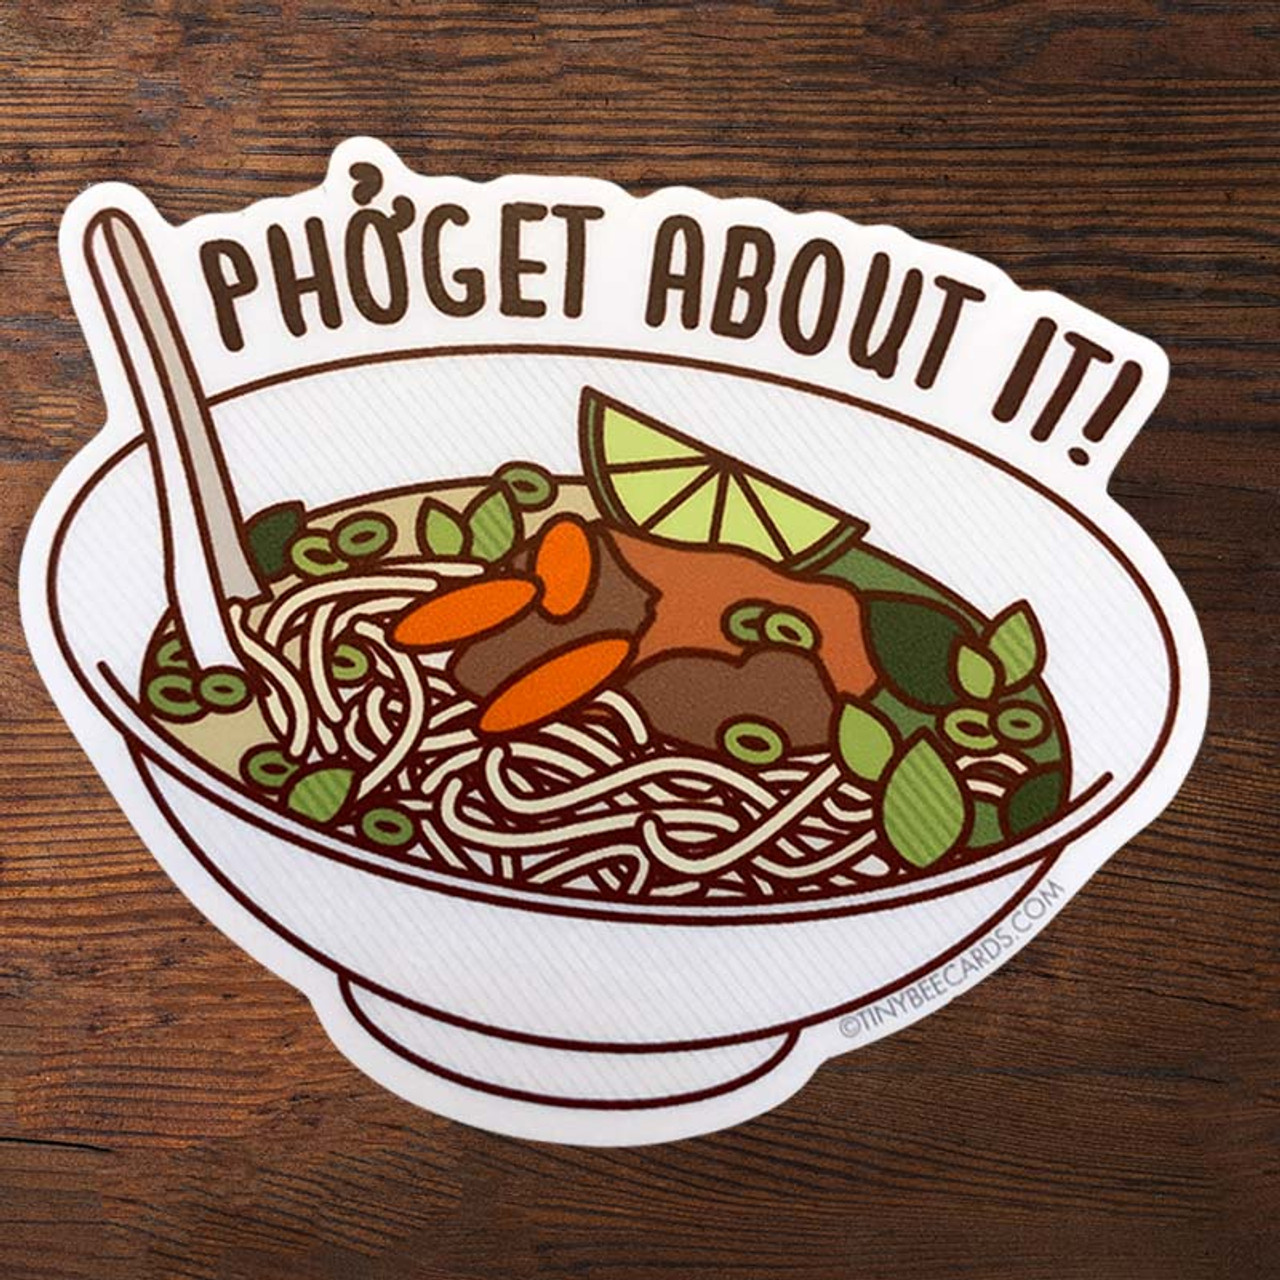 Phoget Pho (forget) About It! Sticker Pun